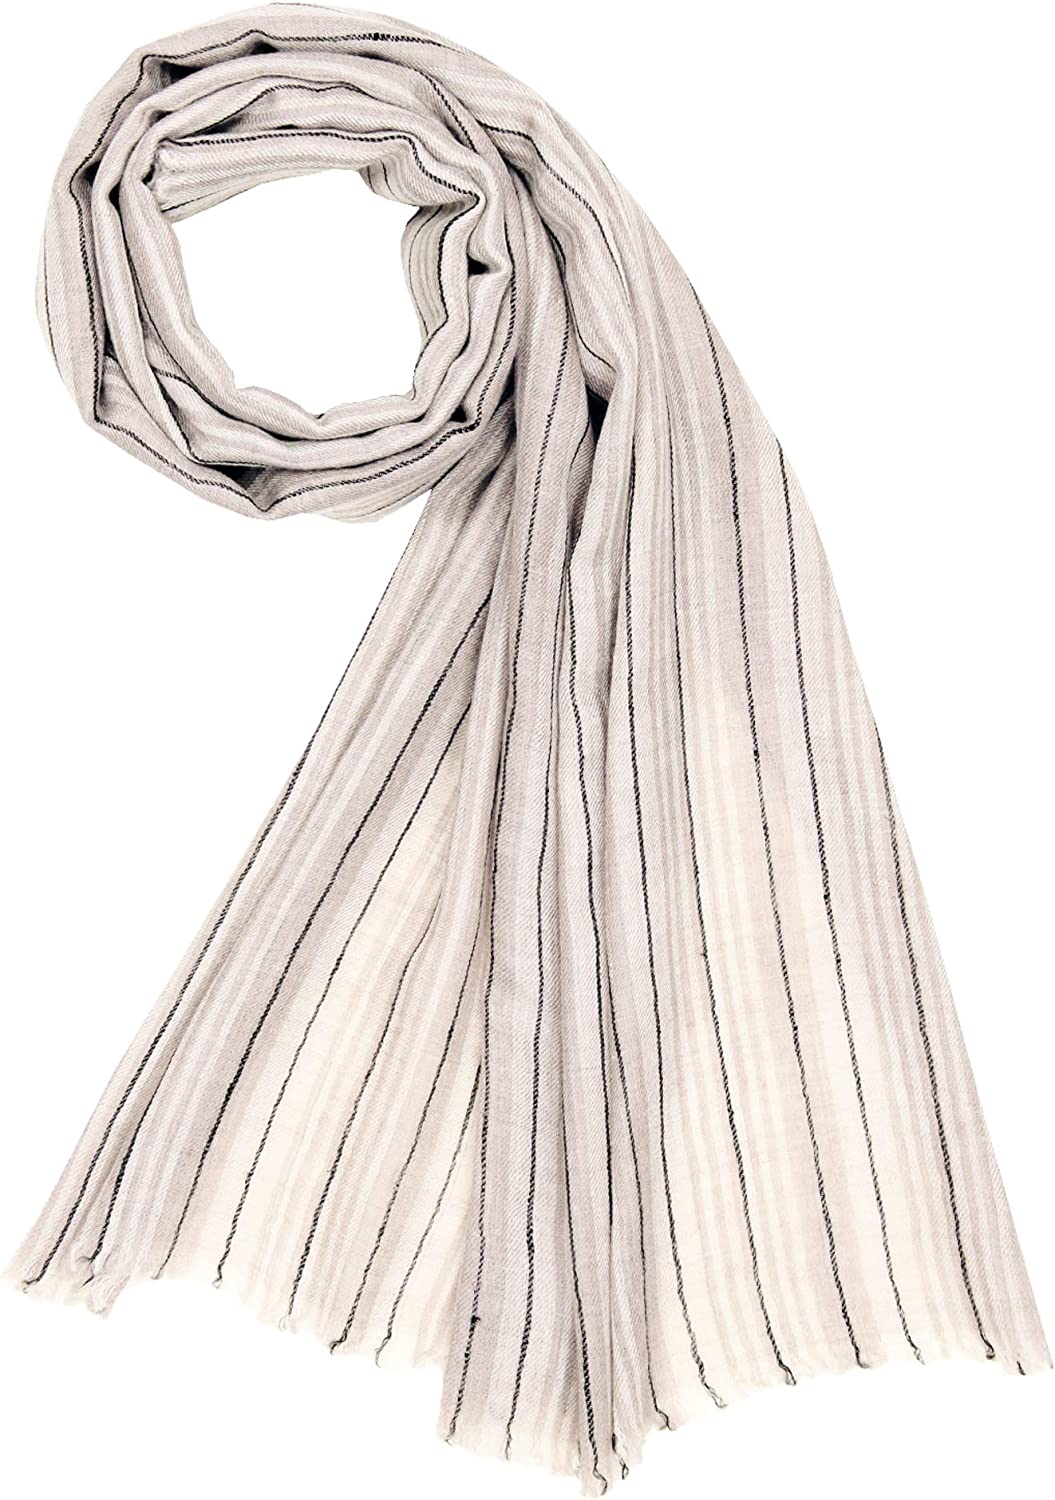 100% Handspun Cashmere Womens Mens Stripes Scarf Stole Shawl Natural Ivory Black